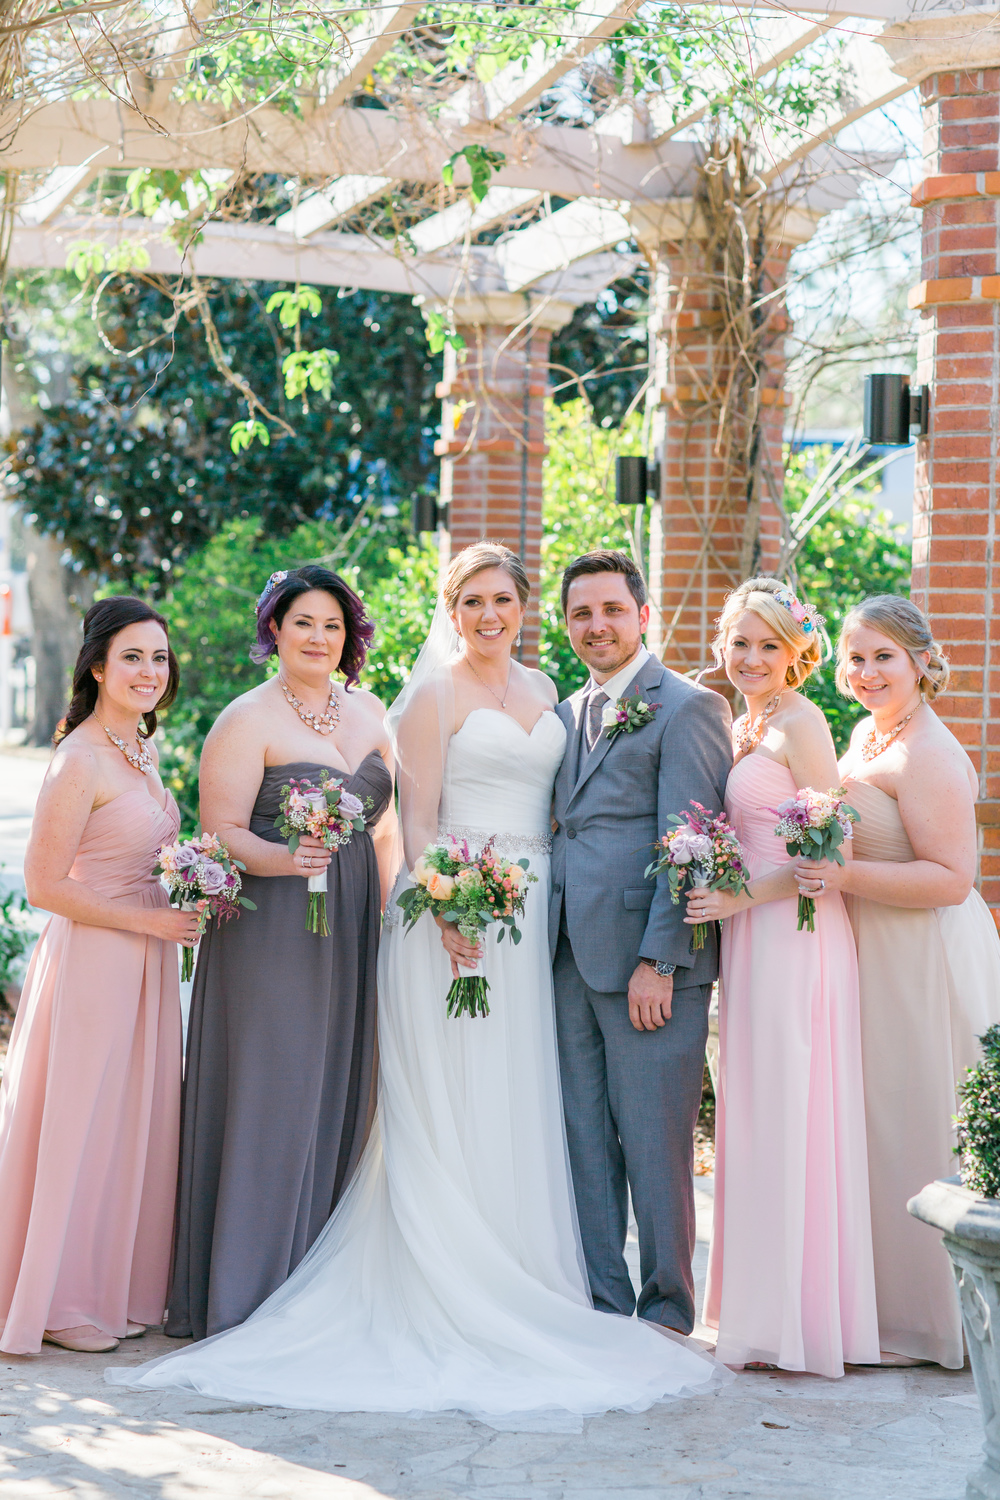 Megan & Michael, May 20th, 2016, Winter Park Farmer's Market Wedding